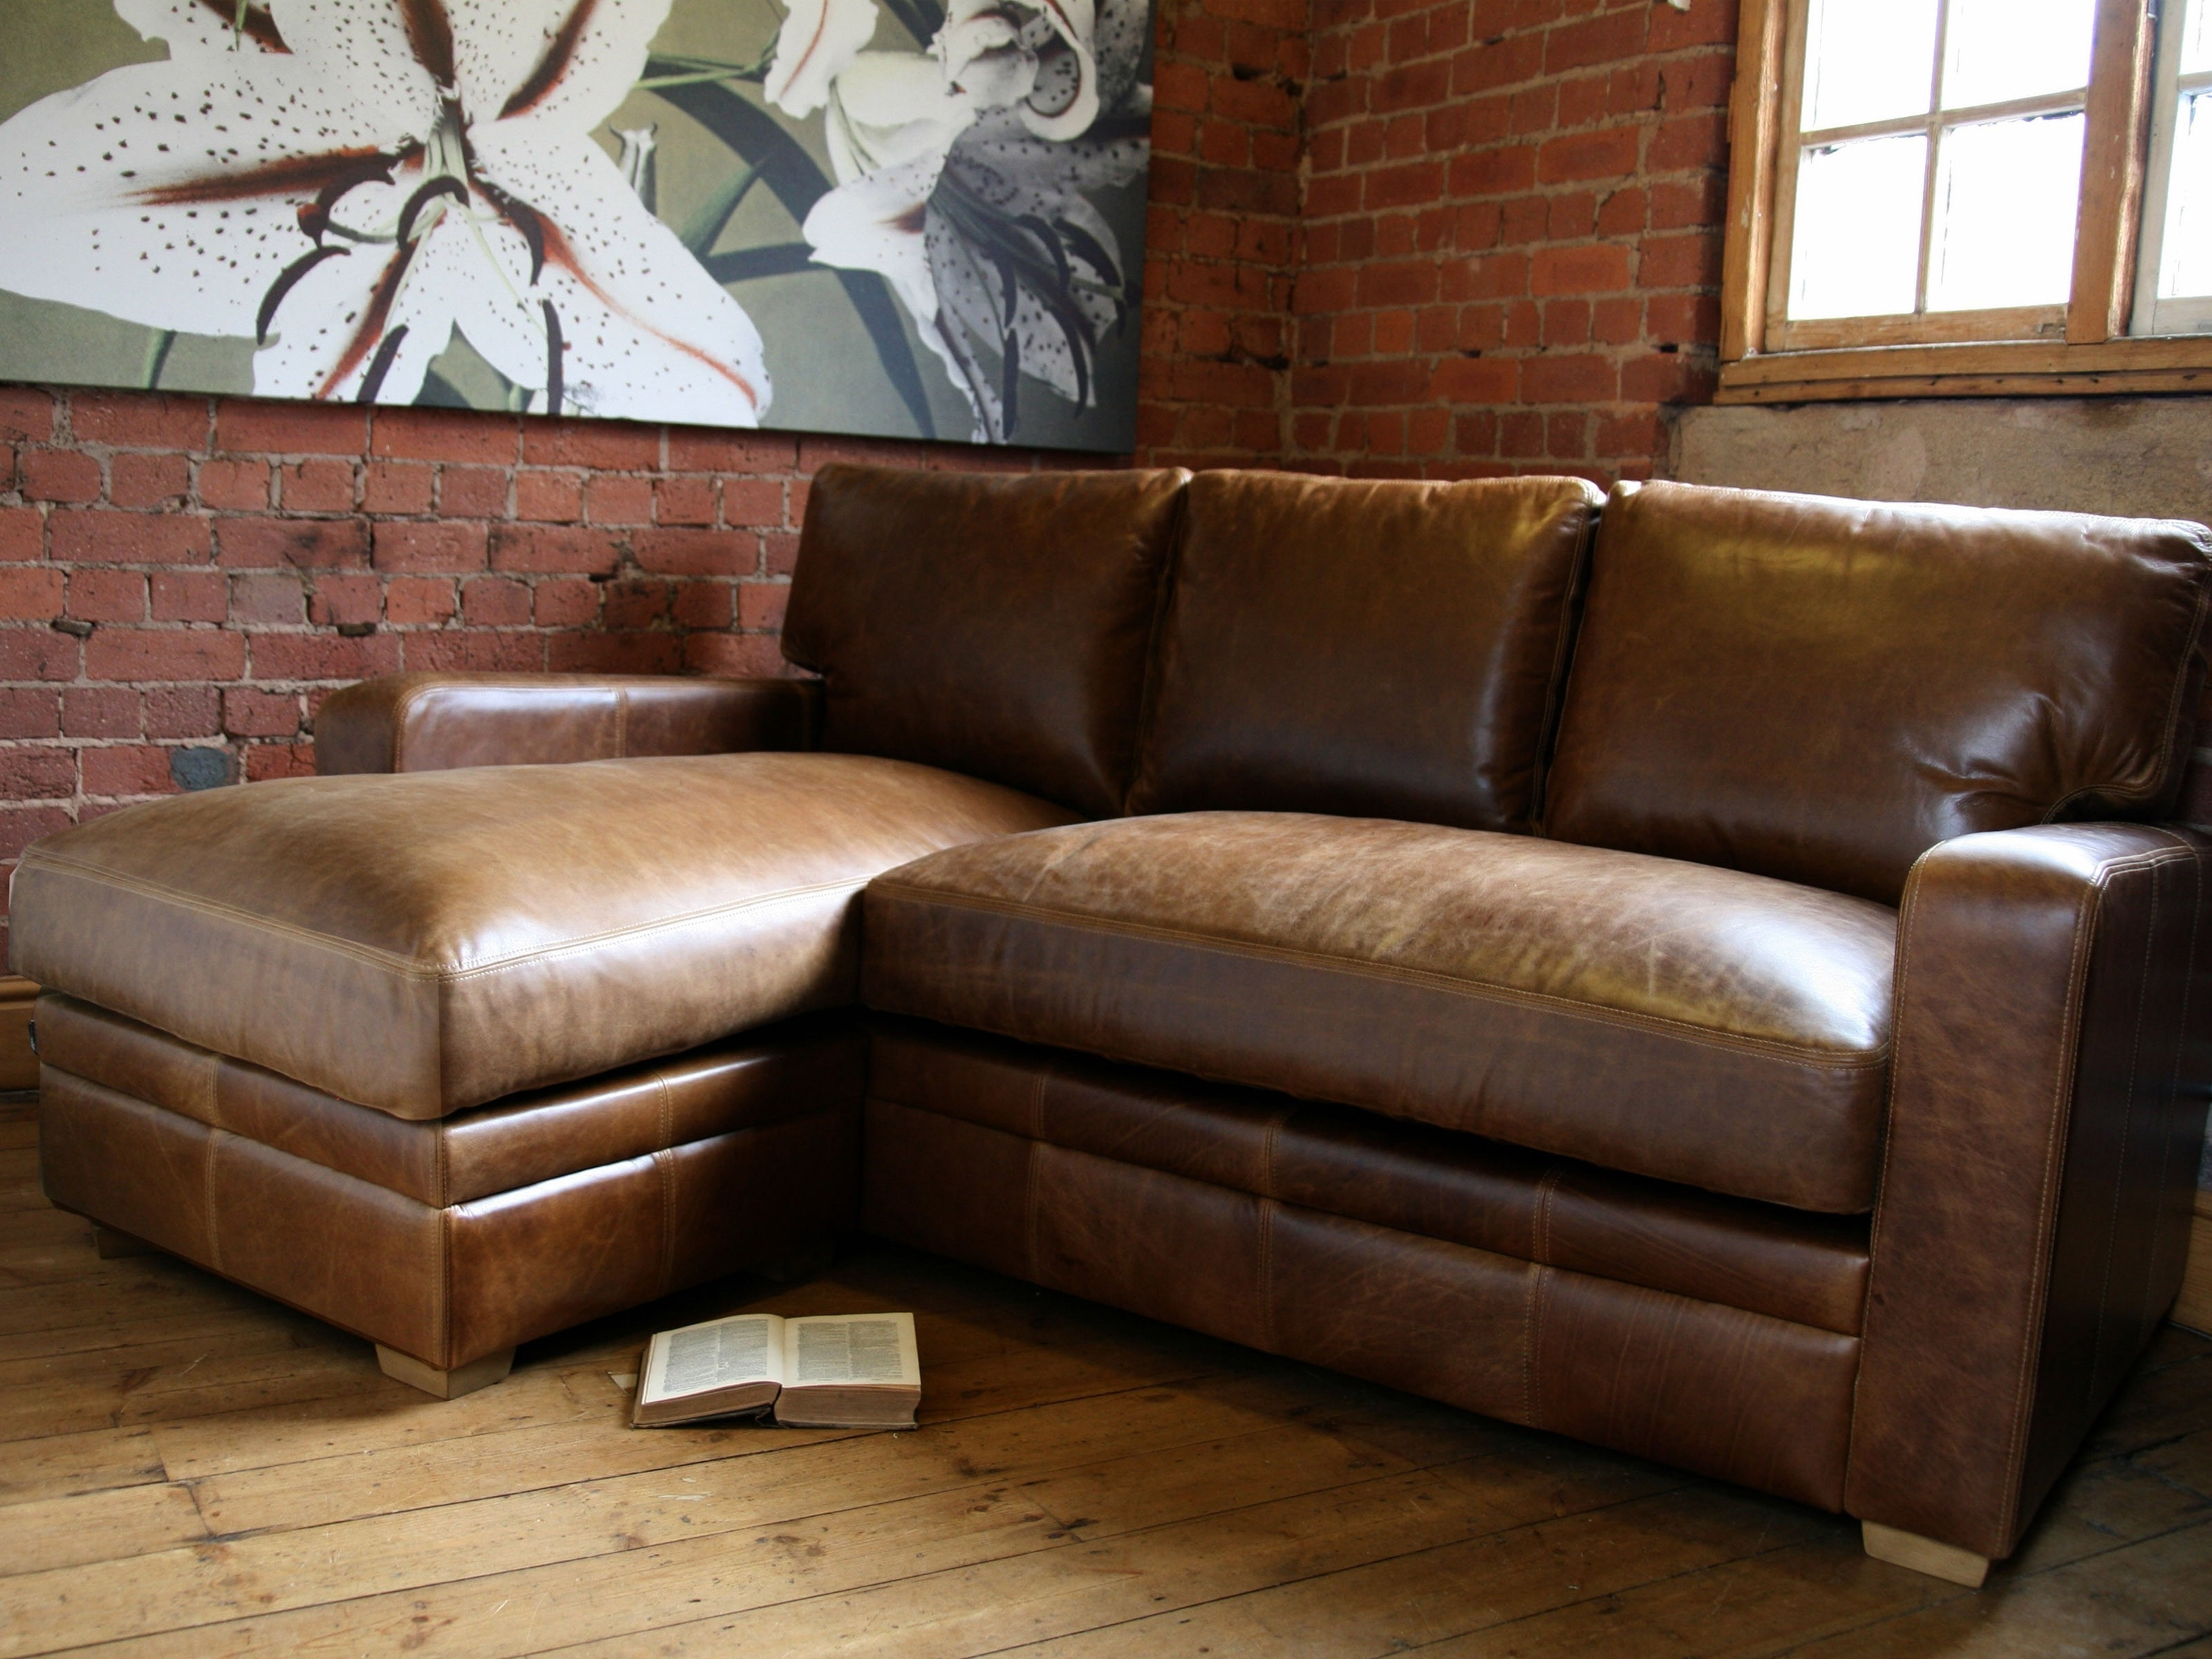 Chaise Lounge Sofas For Sale With Most Up To Date Sofa ~ Luxury Leather Sofa With Chaise Lounge Great Leather Chaise (View 2 of 15)